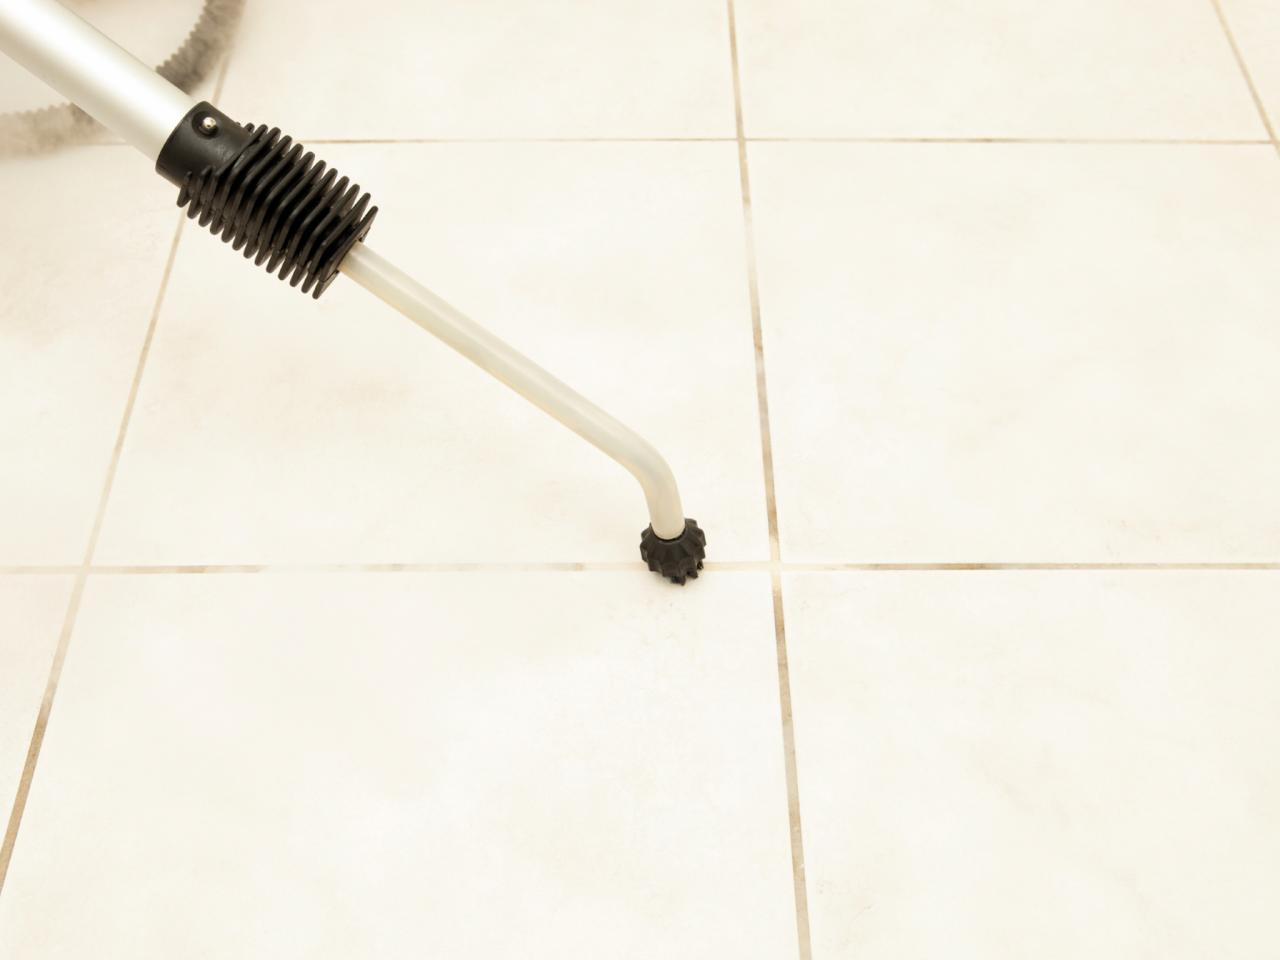 How To Clean Grout DIY - Cleaning dust after tile removal